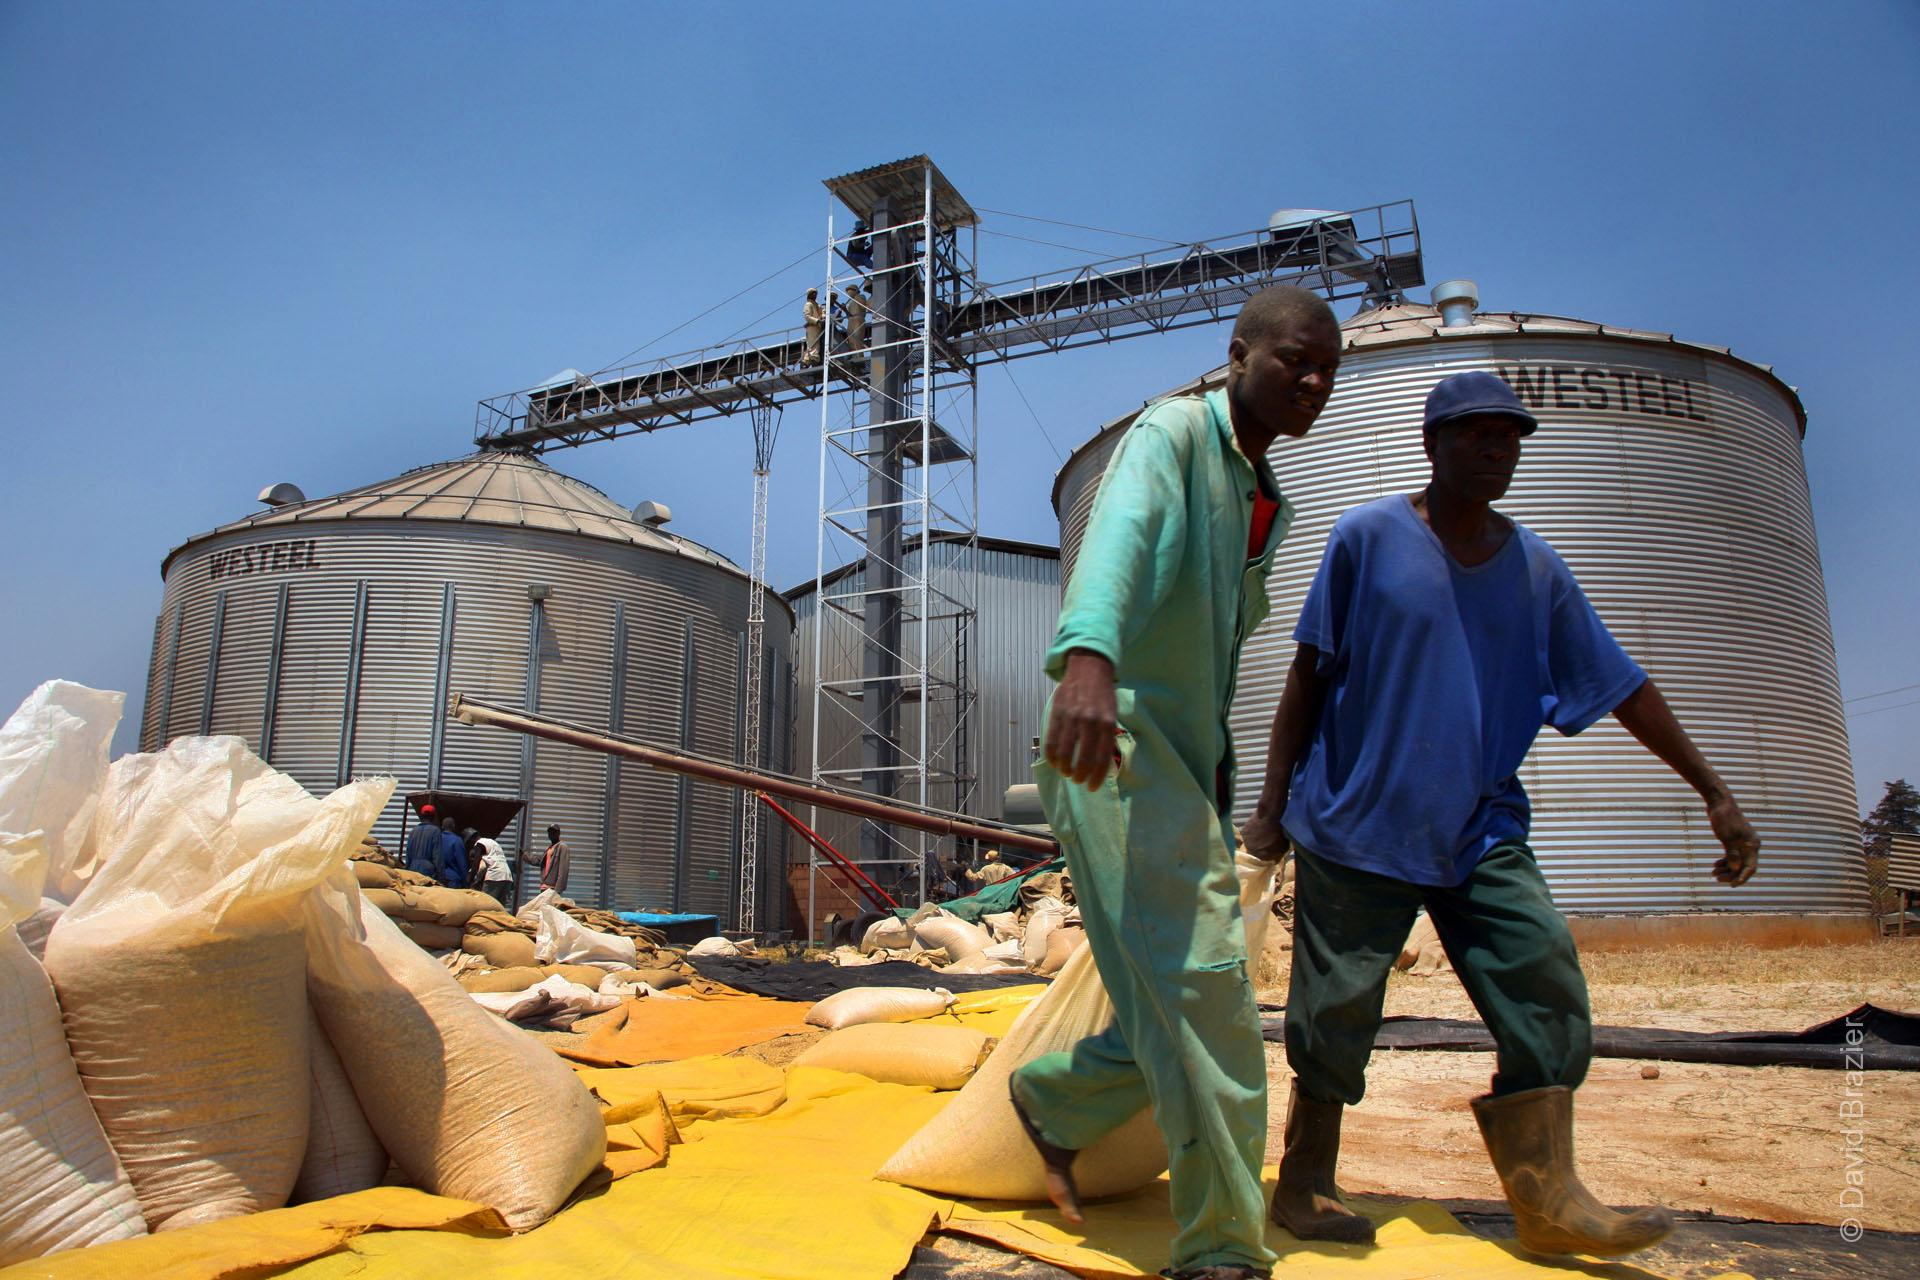 African workers dragging sacks of grain